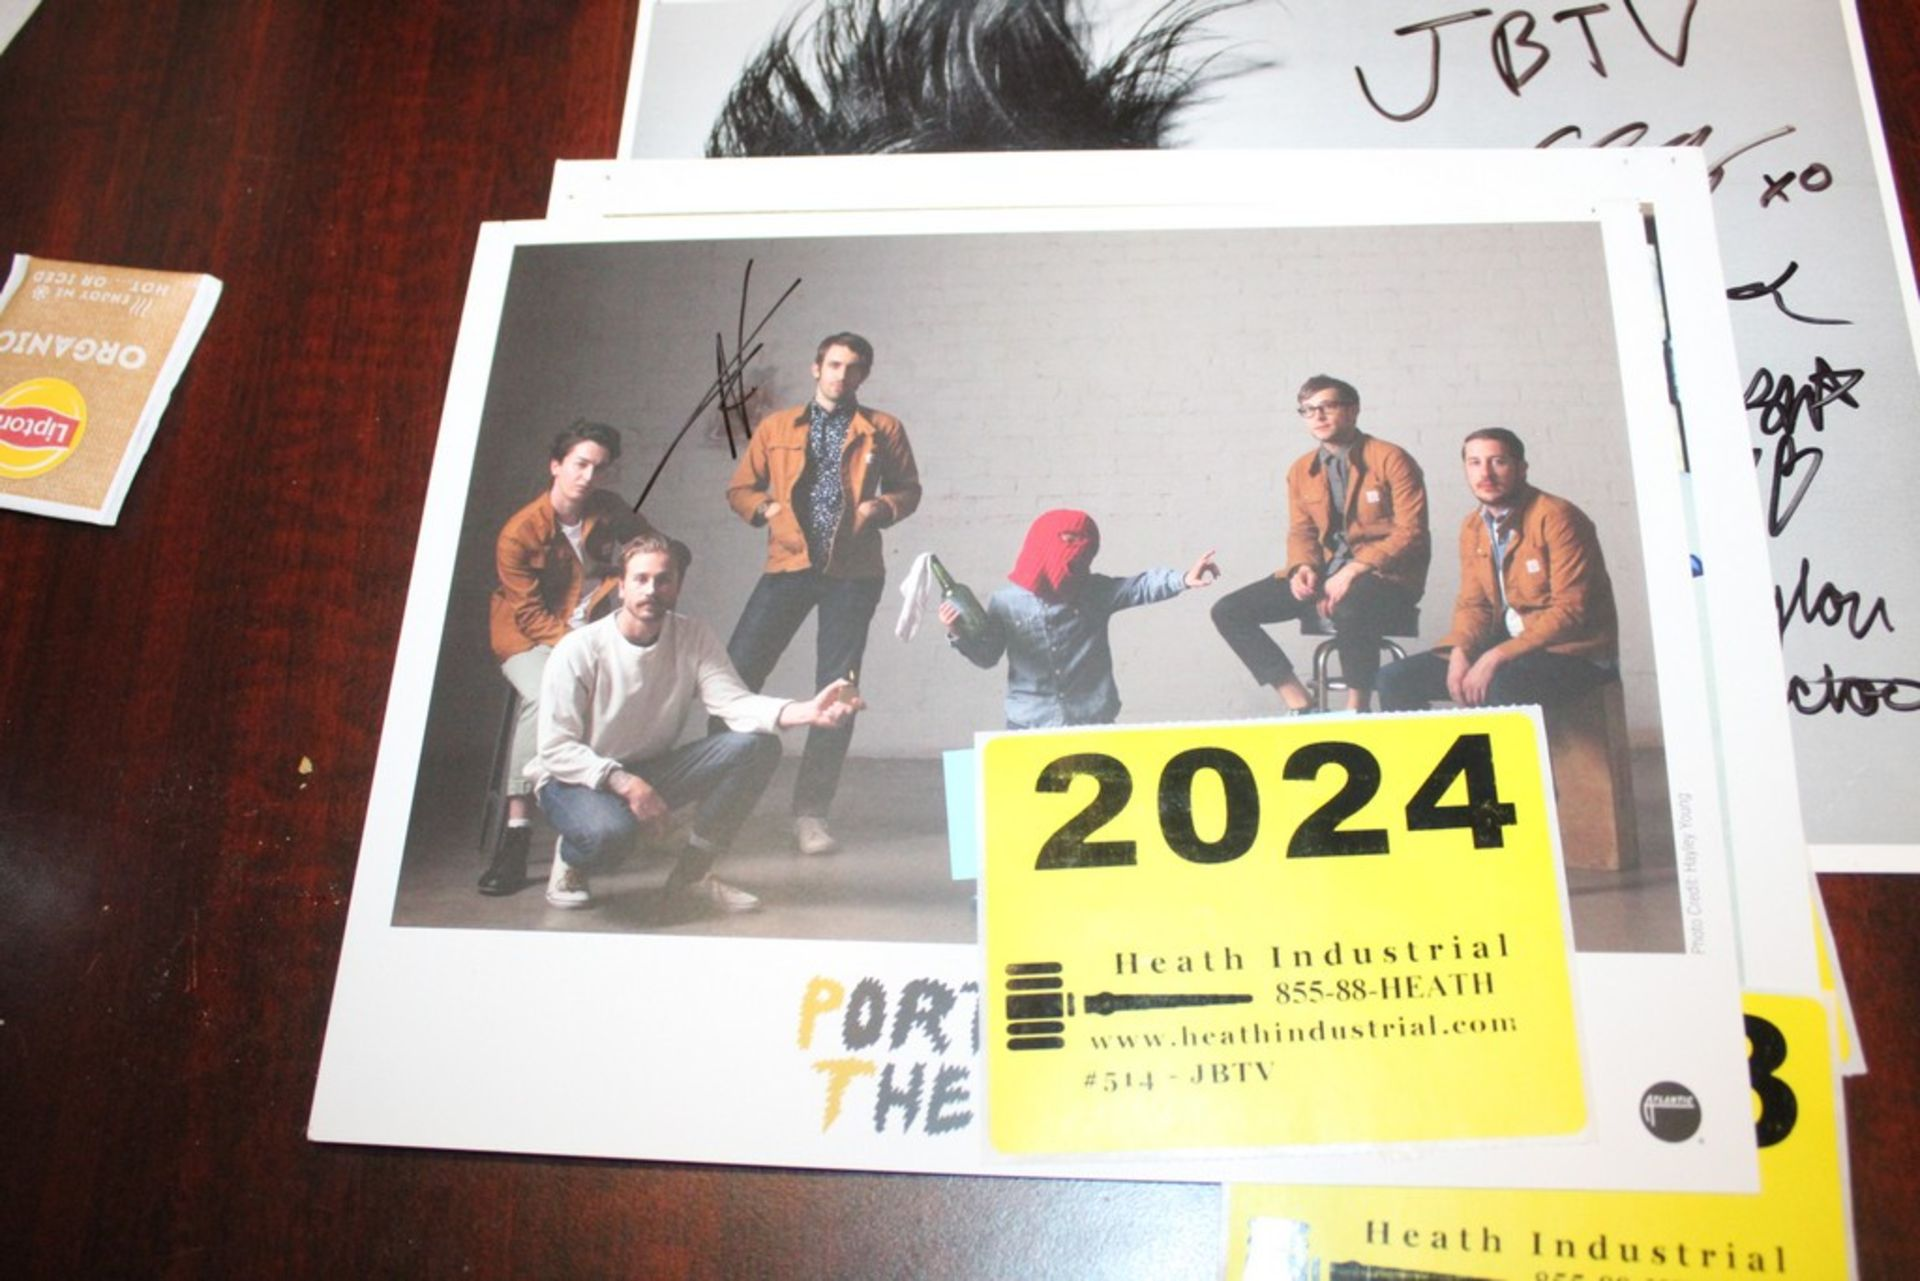 Lot 2024 - Portugal the Man Signed Photo